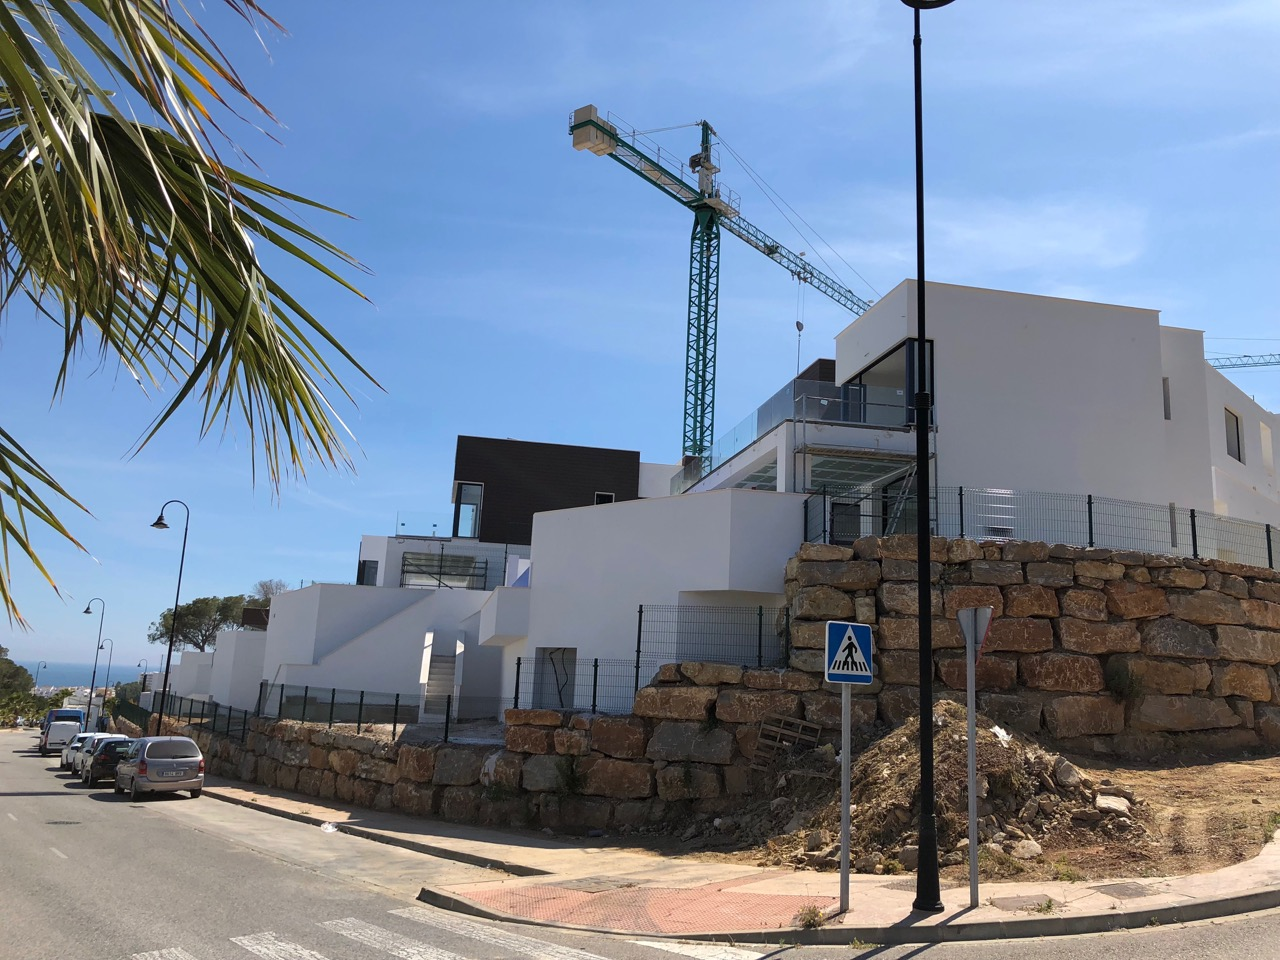 26/05/2018 Villa 7 and 8, from the main road